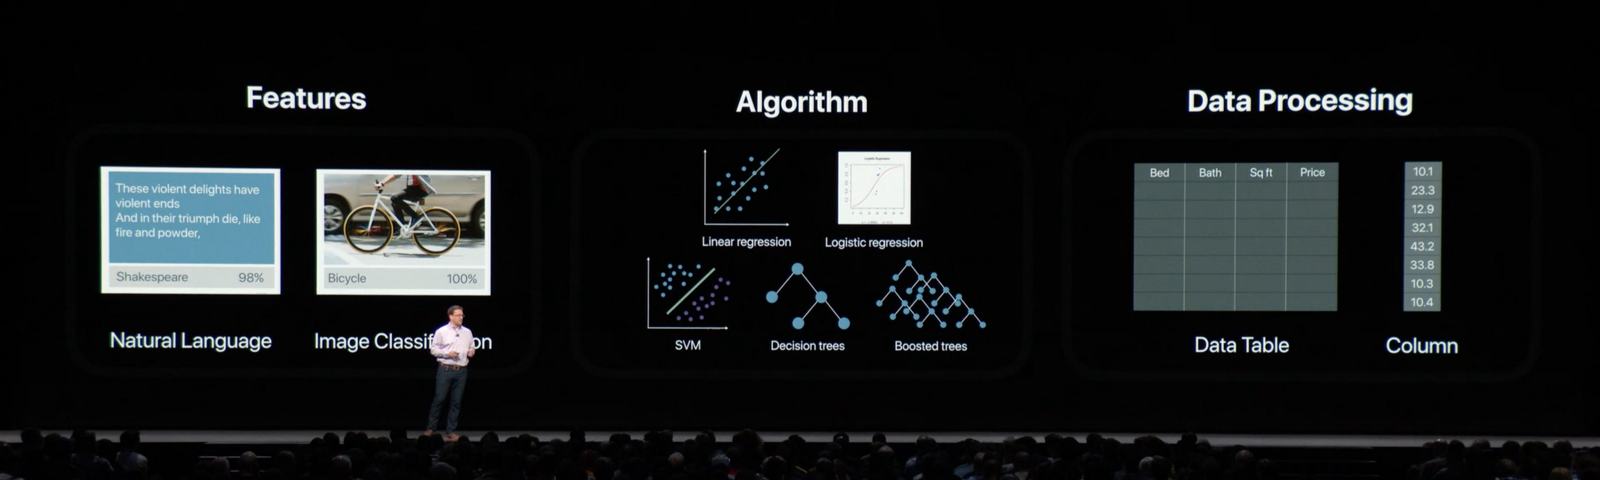 Image result for wwdc create ml